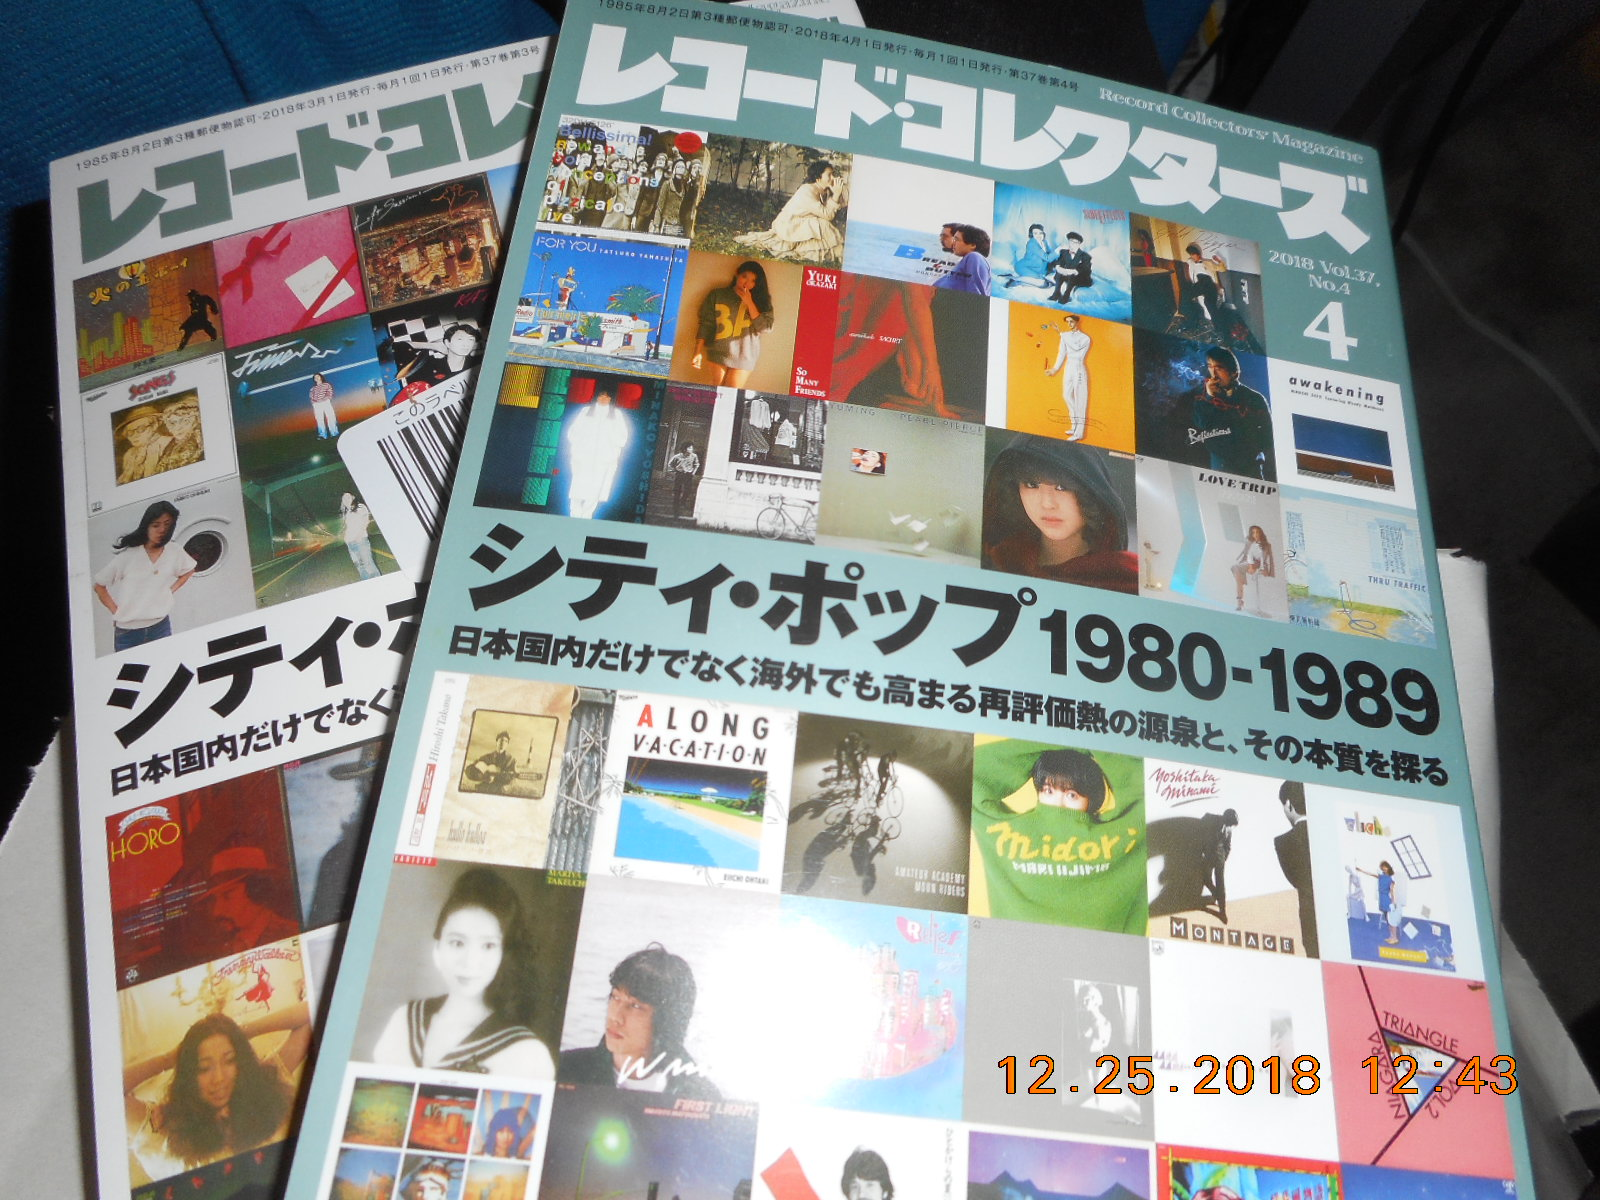 Kayo Kyoku Plus: J-Canuck's Choices for 1980s City Pop/J-AOR Albums